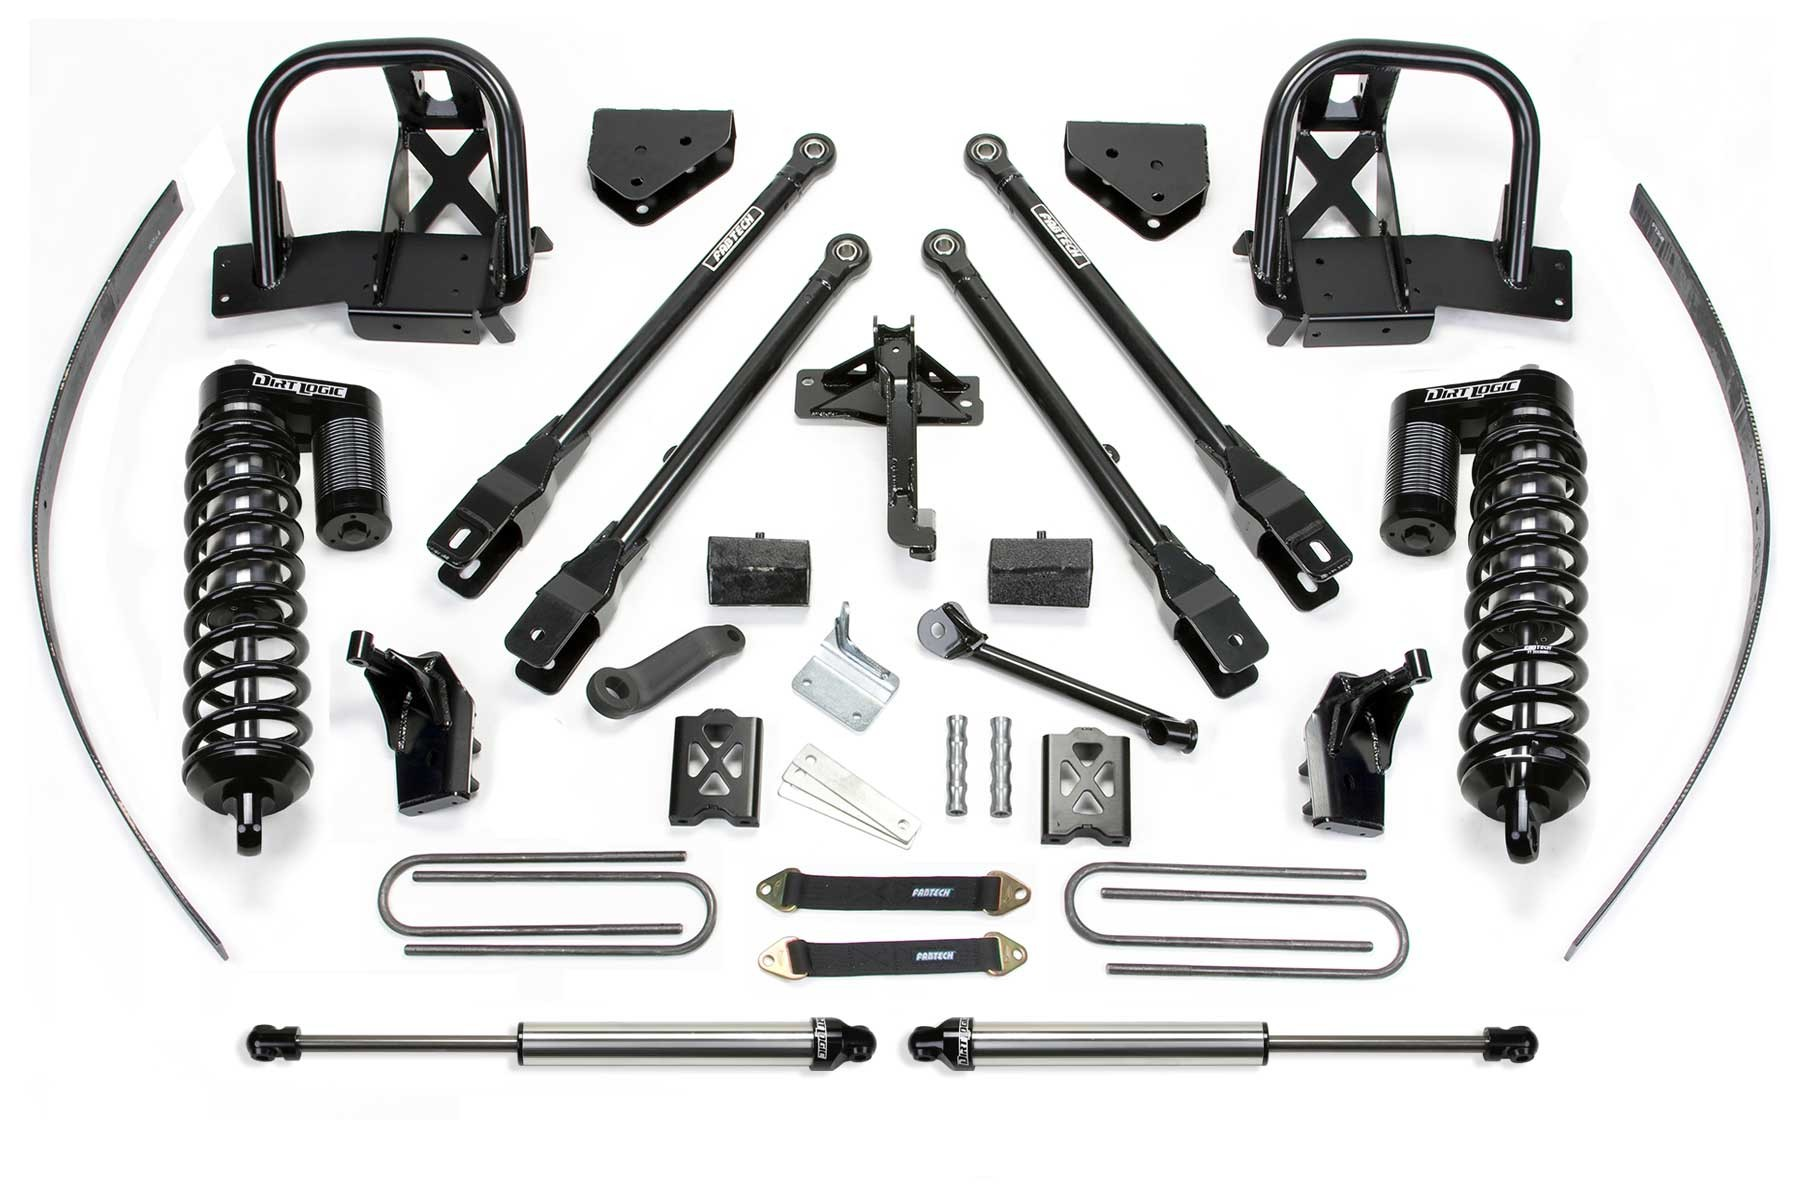 FABTECH 2008-10 FORD F250 4WD- 8″ 4 LINK SYSTEM W/ DIRT LOGIC 4.0 COILOVERS & REAR DIRT LOGIC SHOCKS